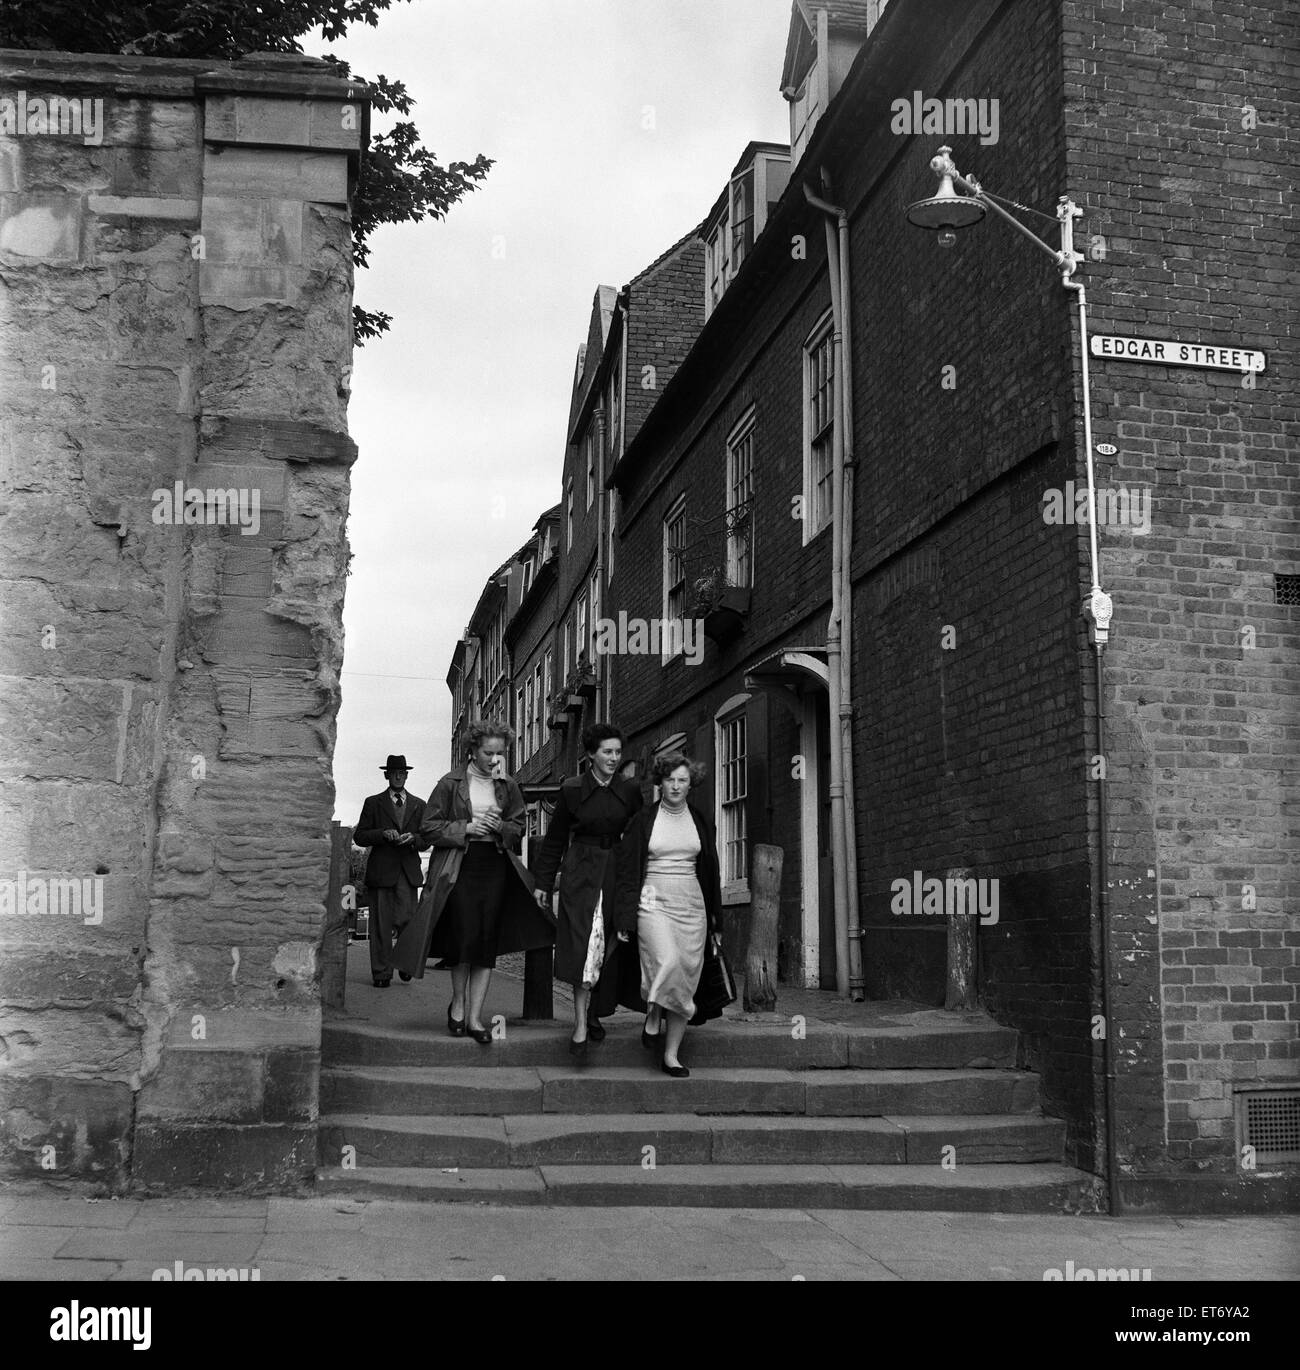 Edgar Street in Worcester, Worcestershire. 24th September 1954. - Stock Image